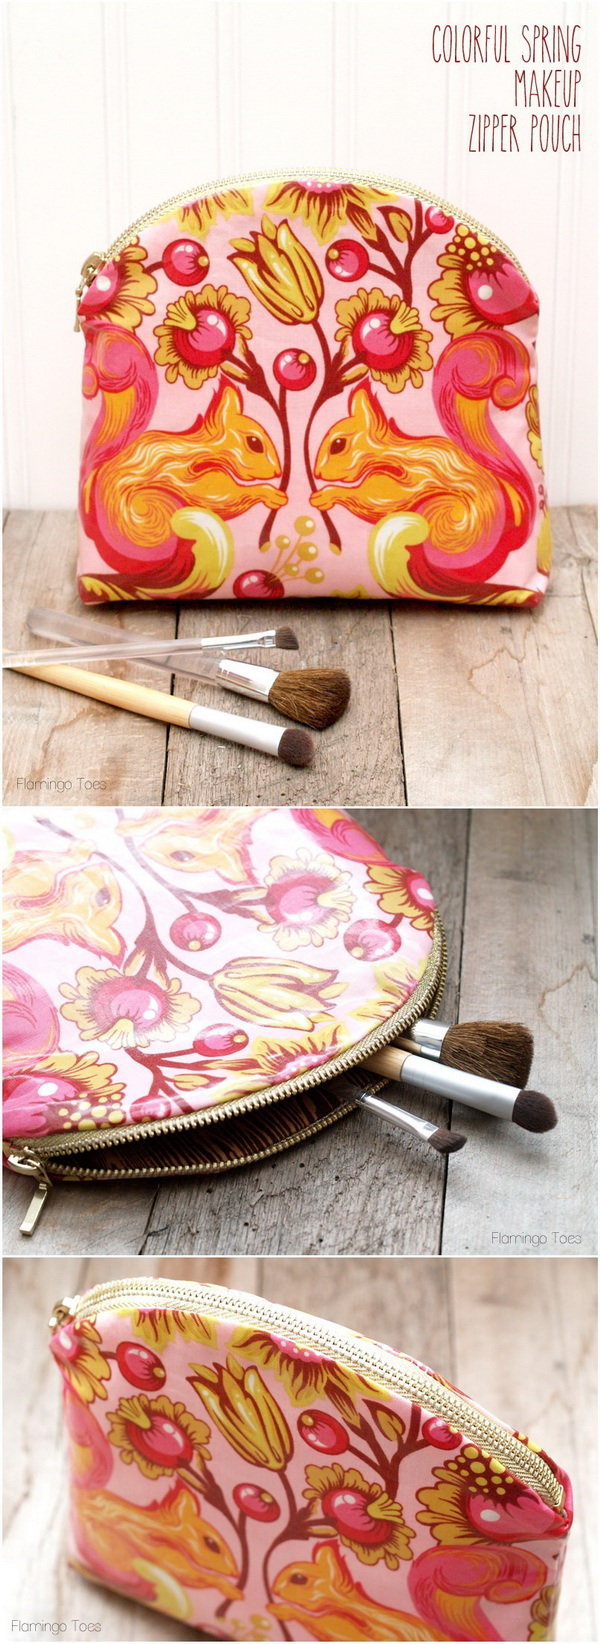 Colorful Spring Makeup Zipper Pouch. This makeup bag is super easy to work with and every mon will love this gift.